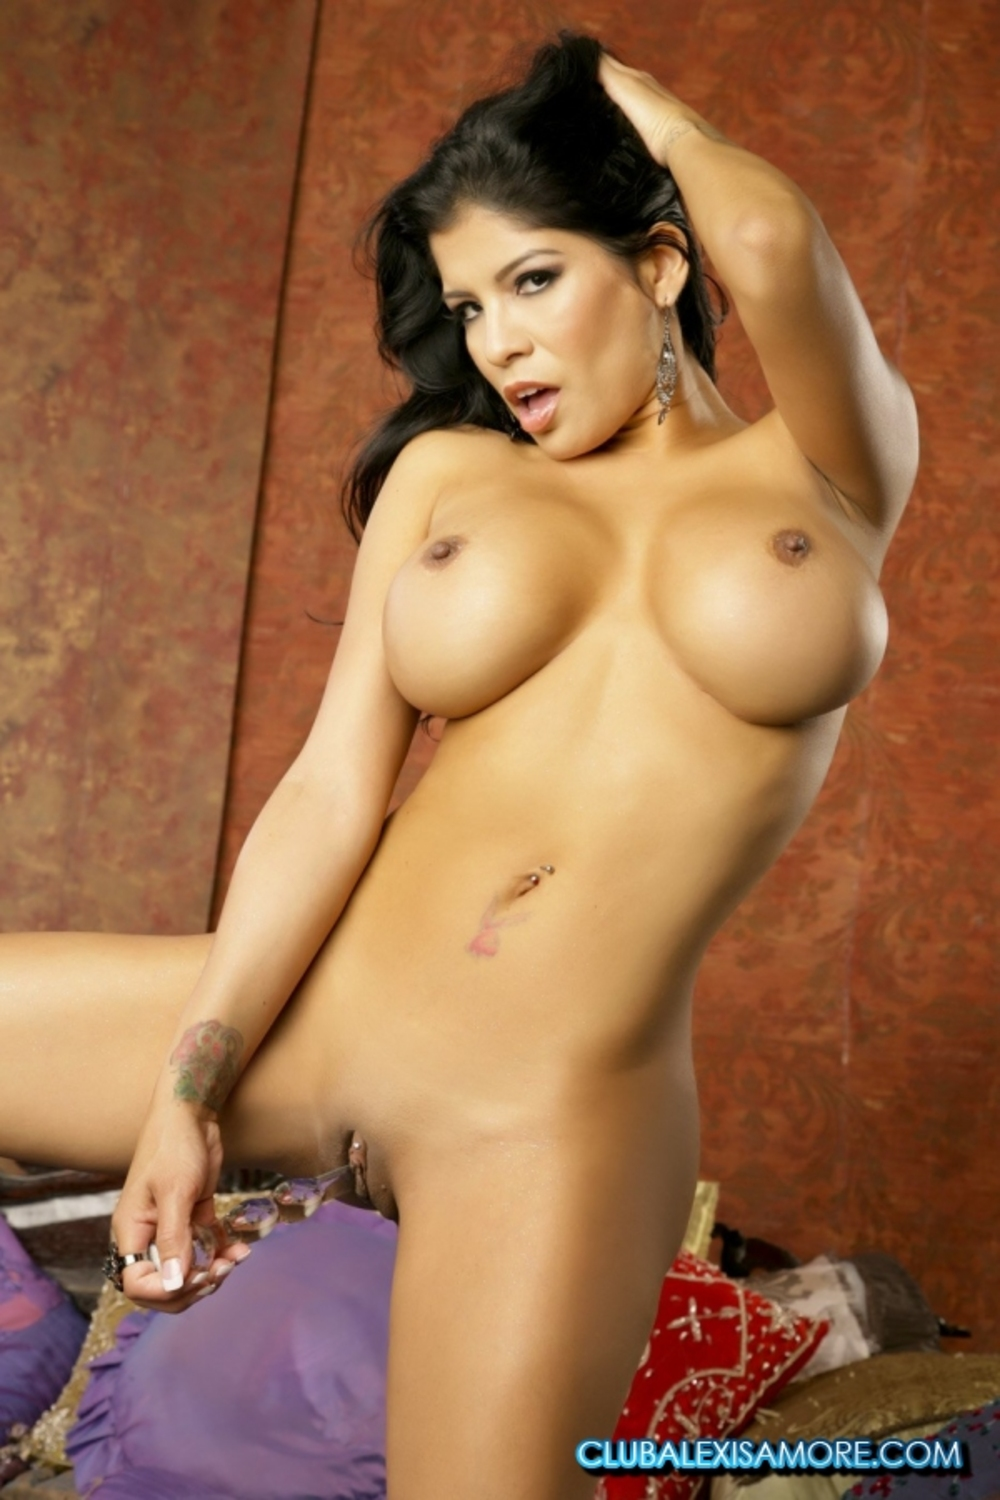 Alexis amore topless